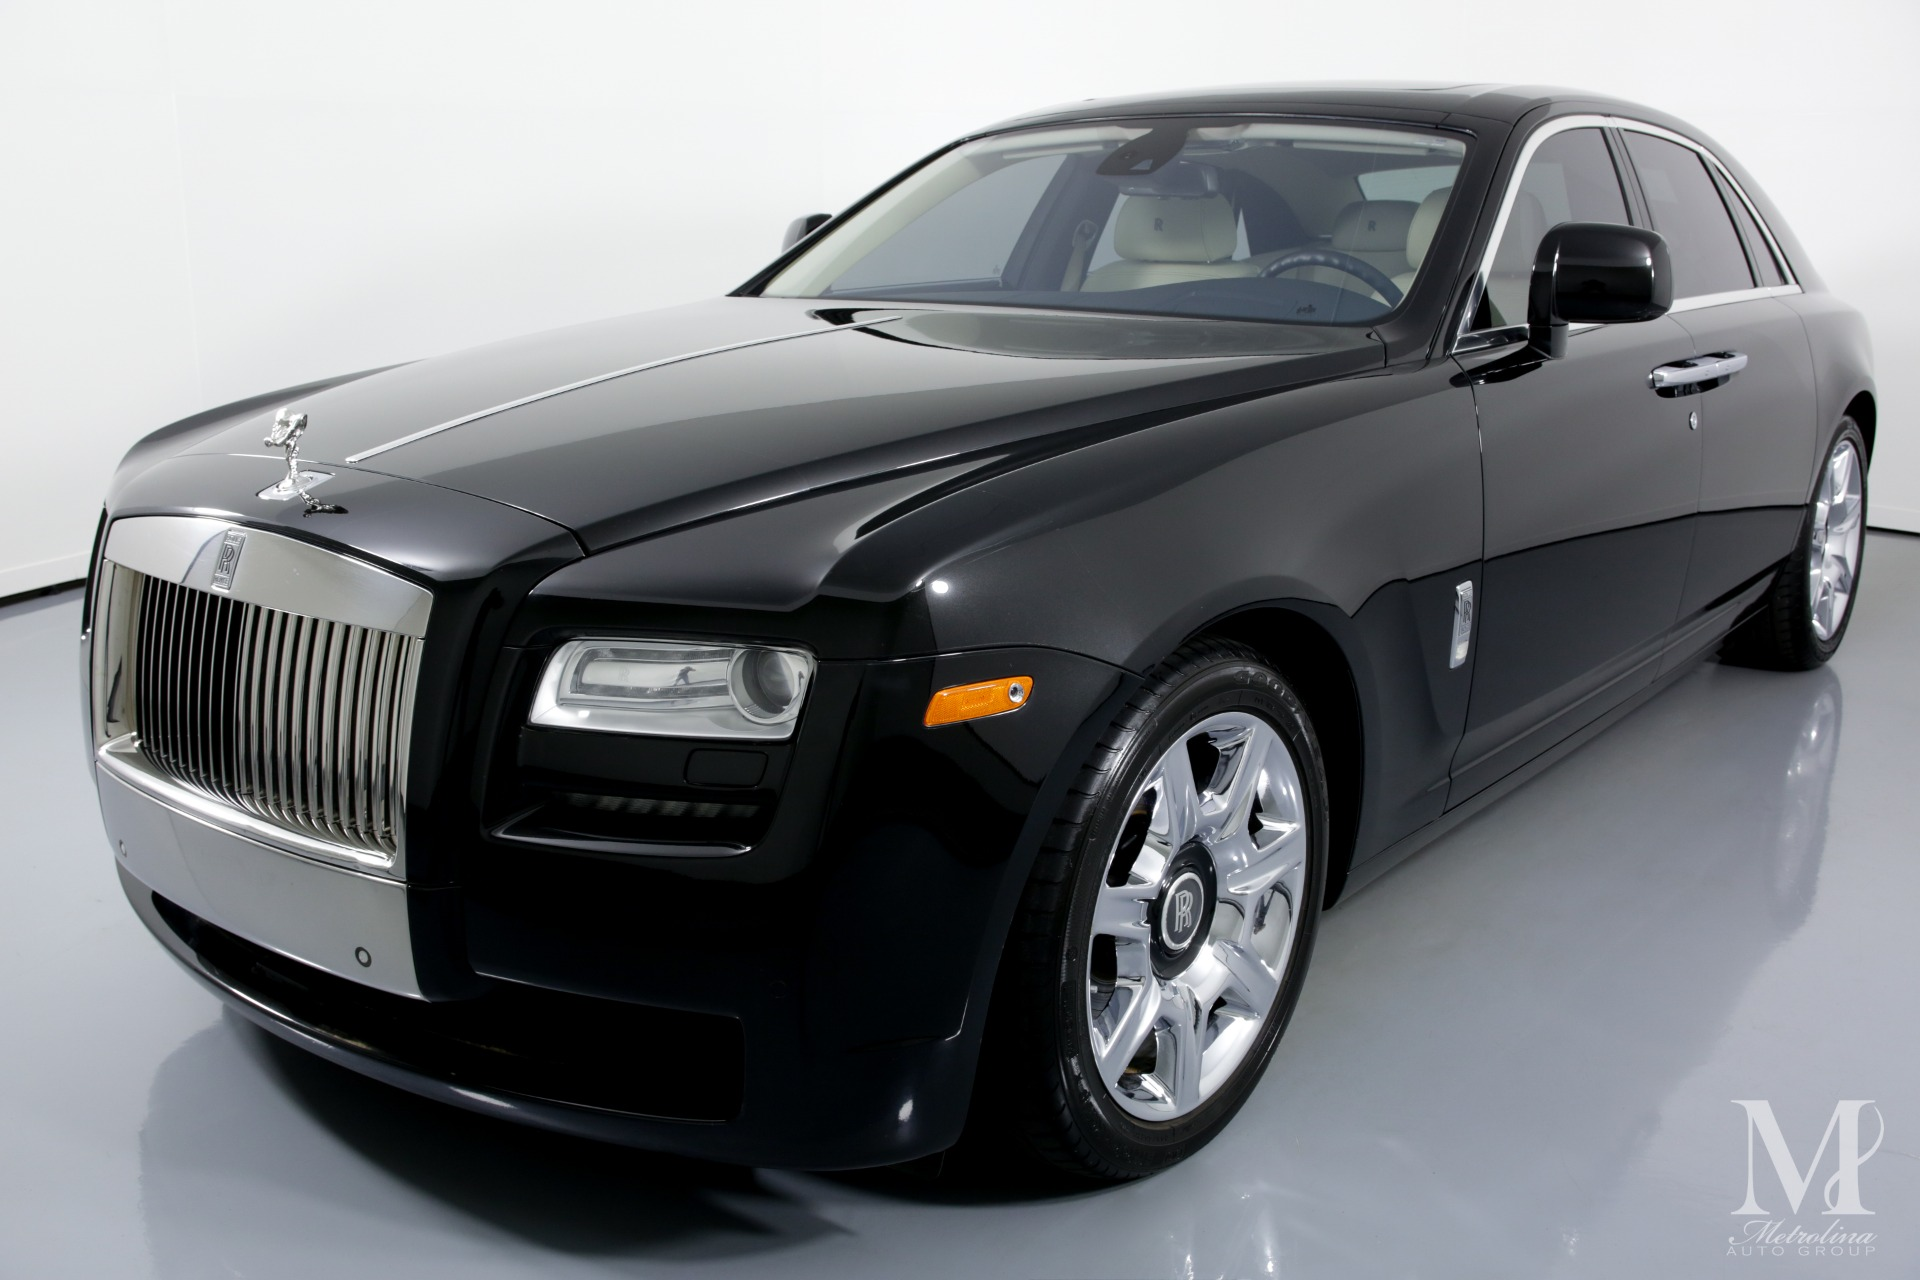 Used 2011 Rolls-Royce Ghost Base 4dr Sedan for sale Sold at Metrolina Auto Group in Charlotte NC 28217 - 4